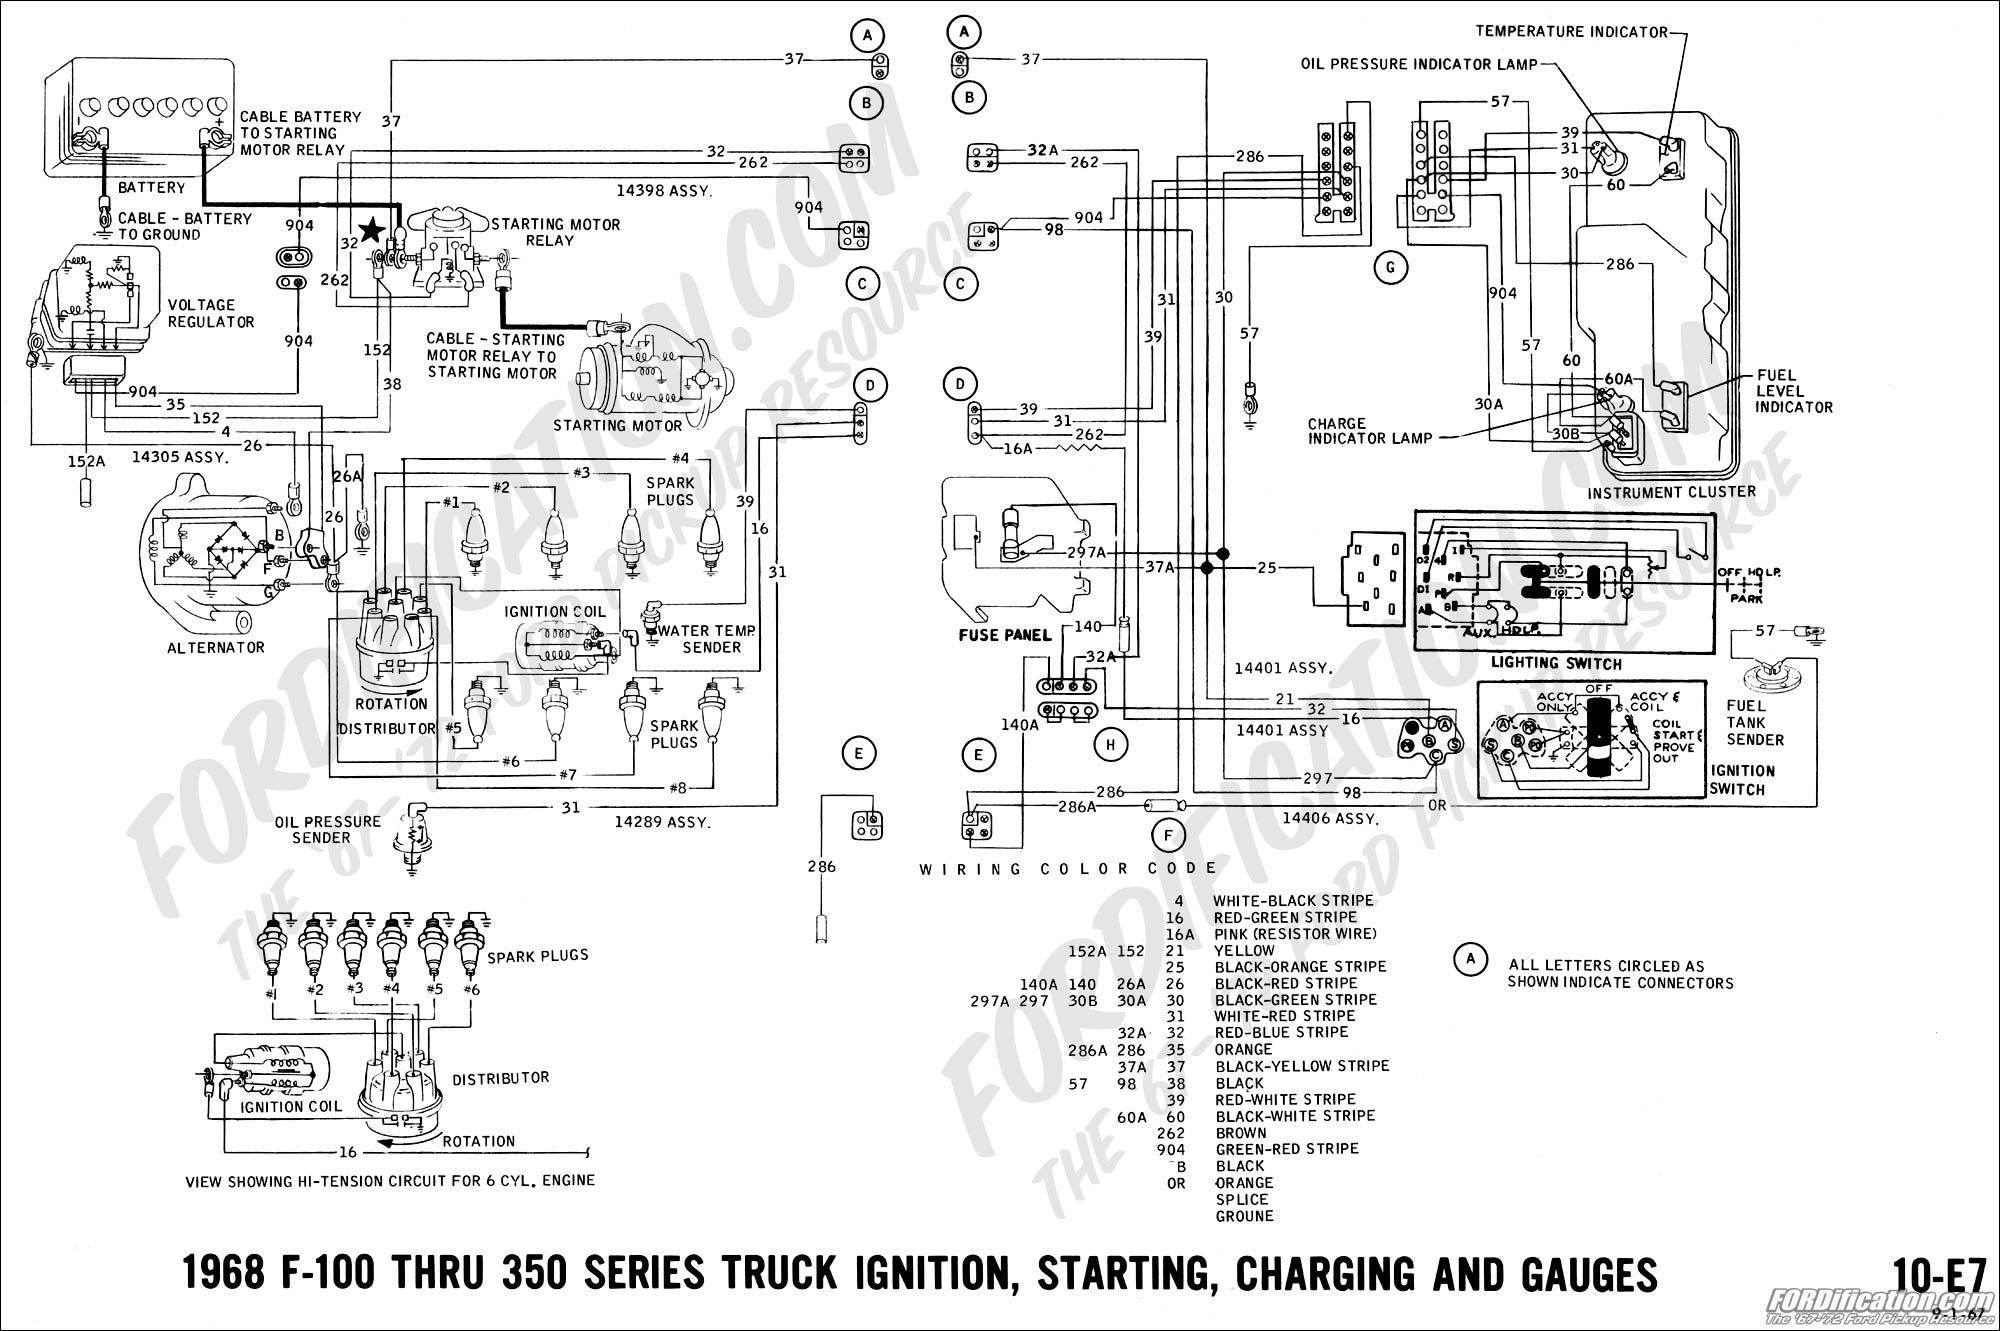 68 09 wiring diagrams 1968 ford f100 6 cyl readingrat net F100 Wiring Diagram at gsmx.co